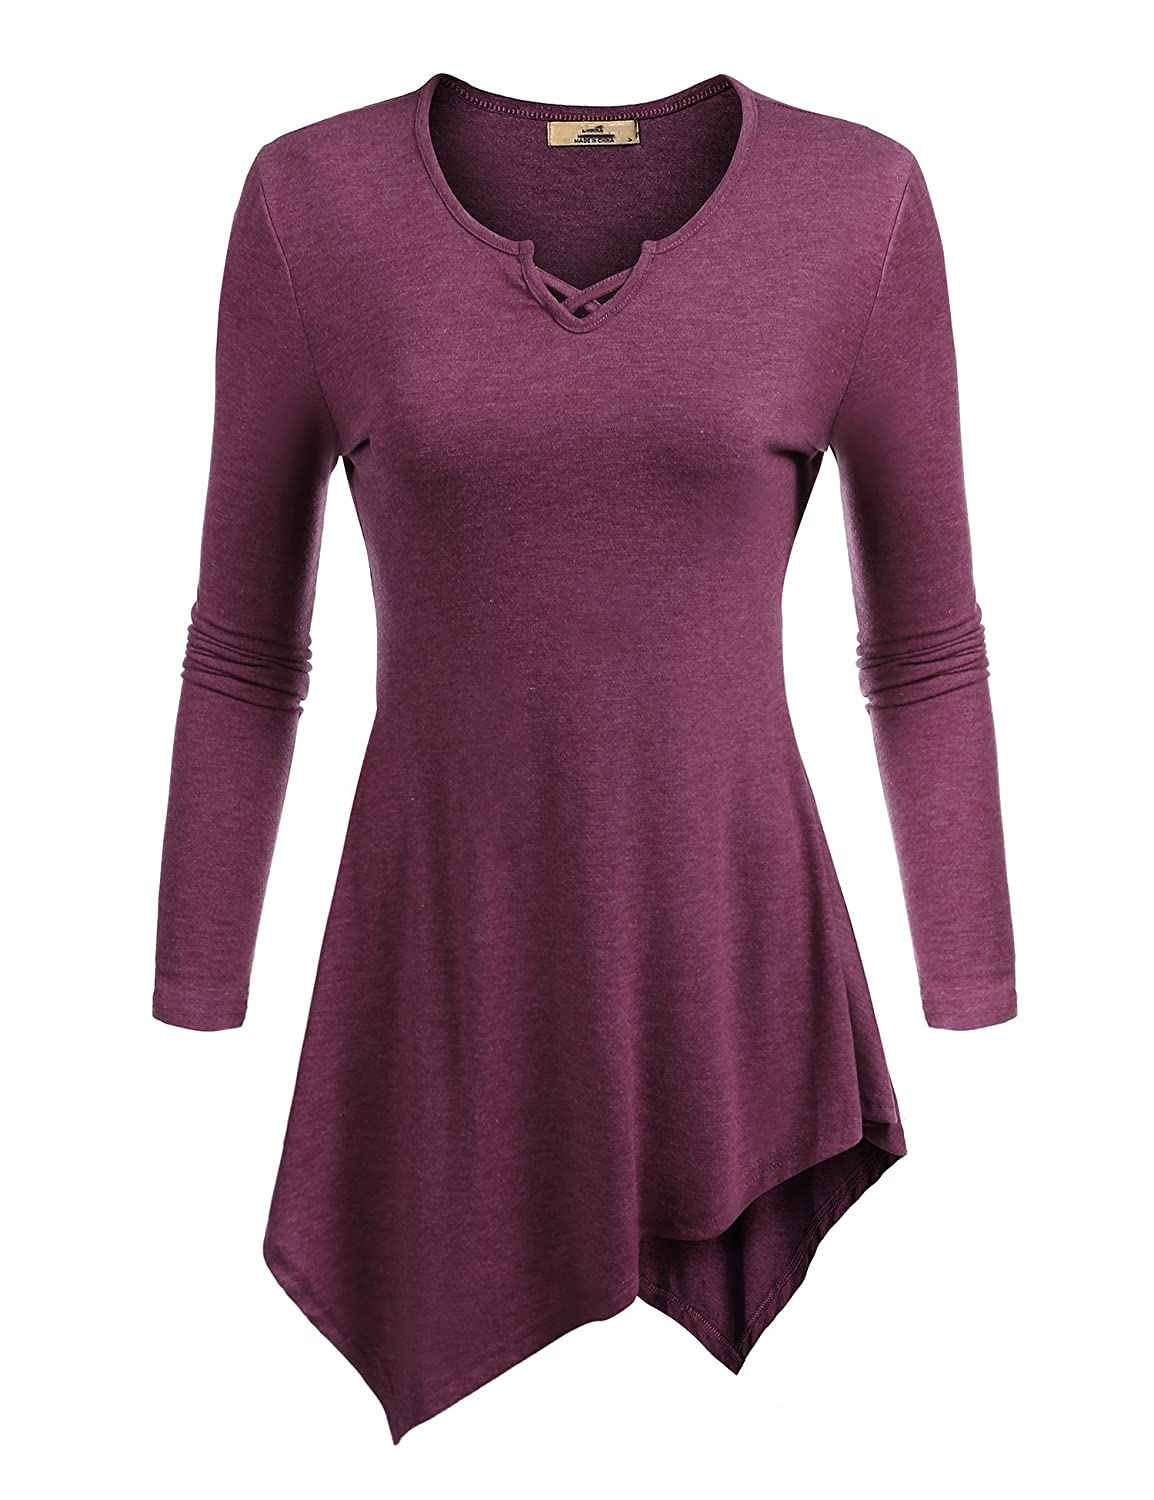 bc0ac84a1d8 Tunic Top Material - Cotton Blend. Good elasticity, soft and comfortable.  Fashion v neckline with bandage embellished / Lightweight swing tunic top  tee with ...